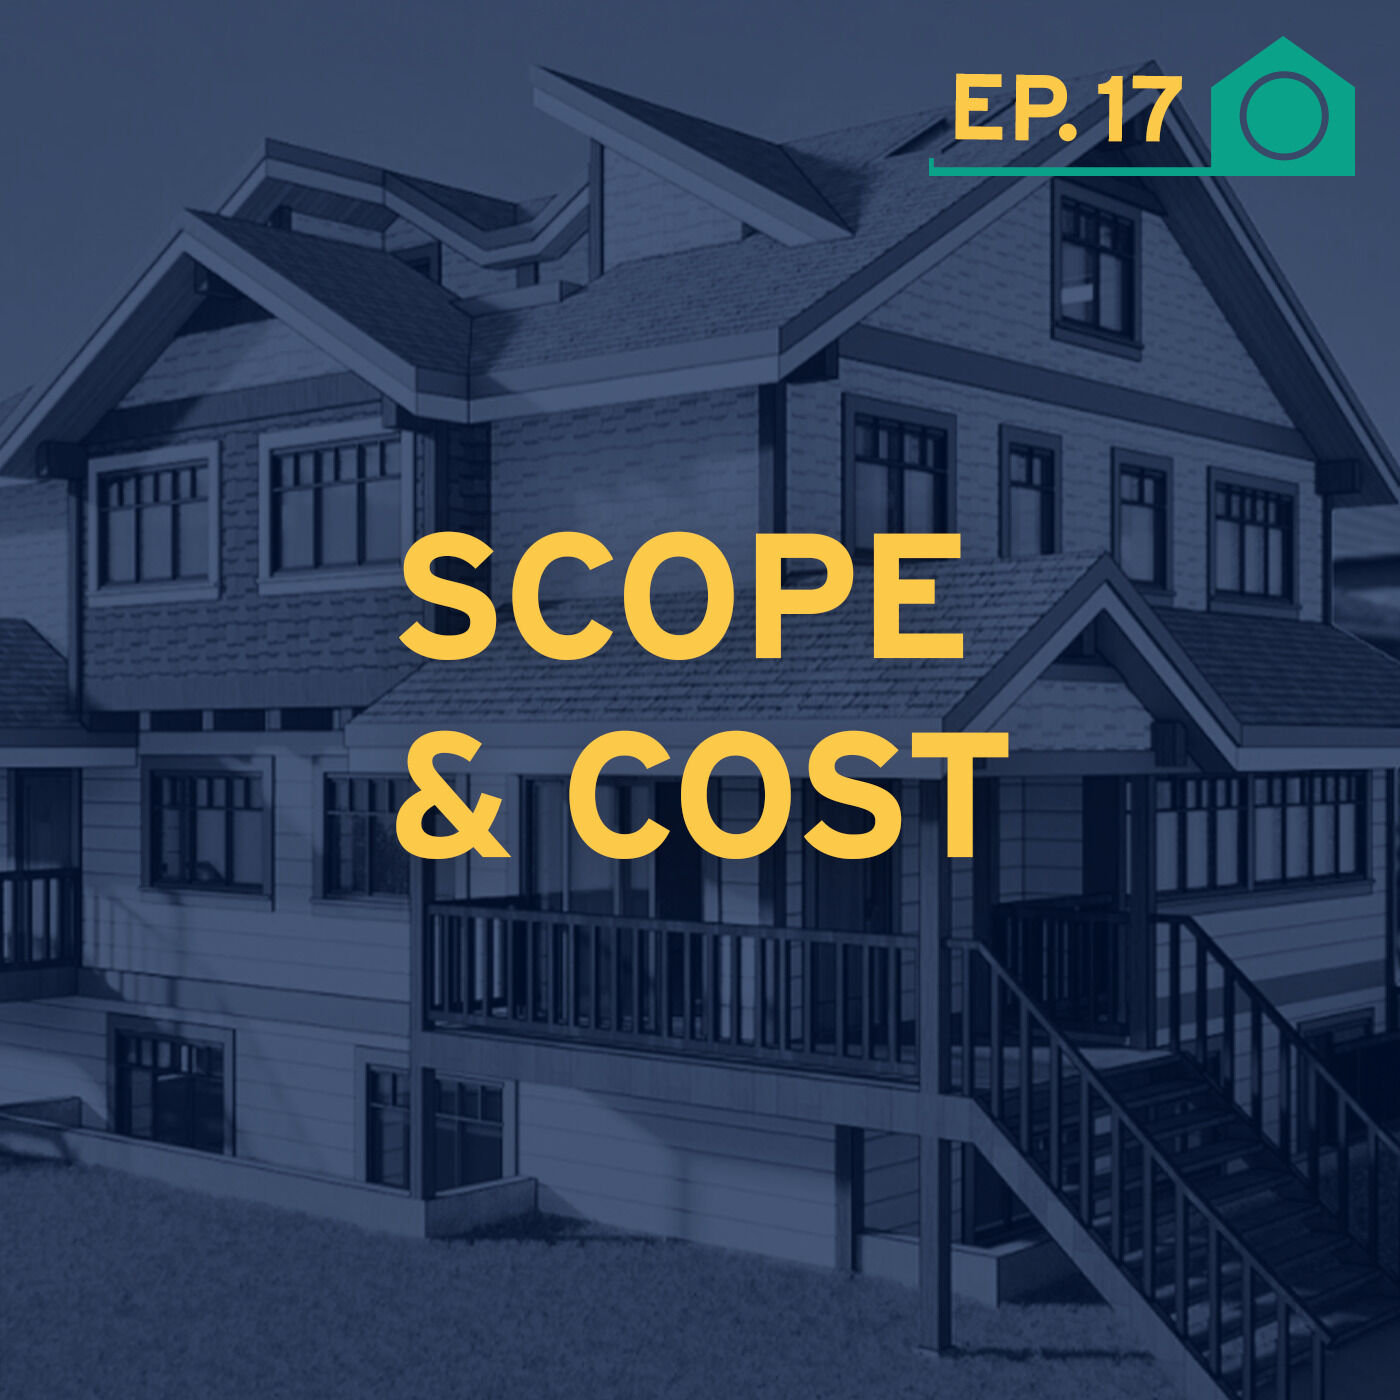 Scope & Cost: Know the Real Cost of Home Renovation and Building